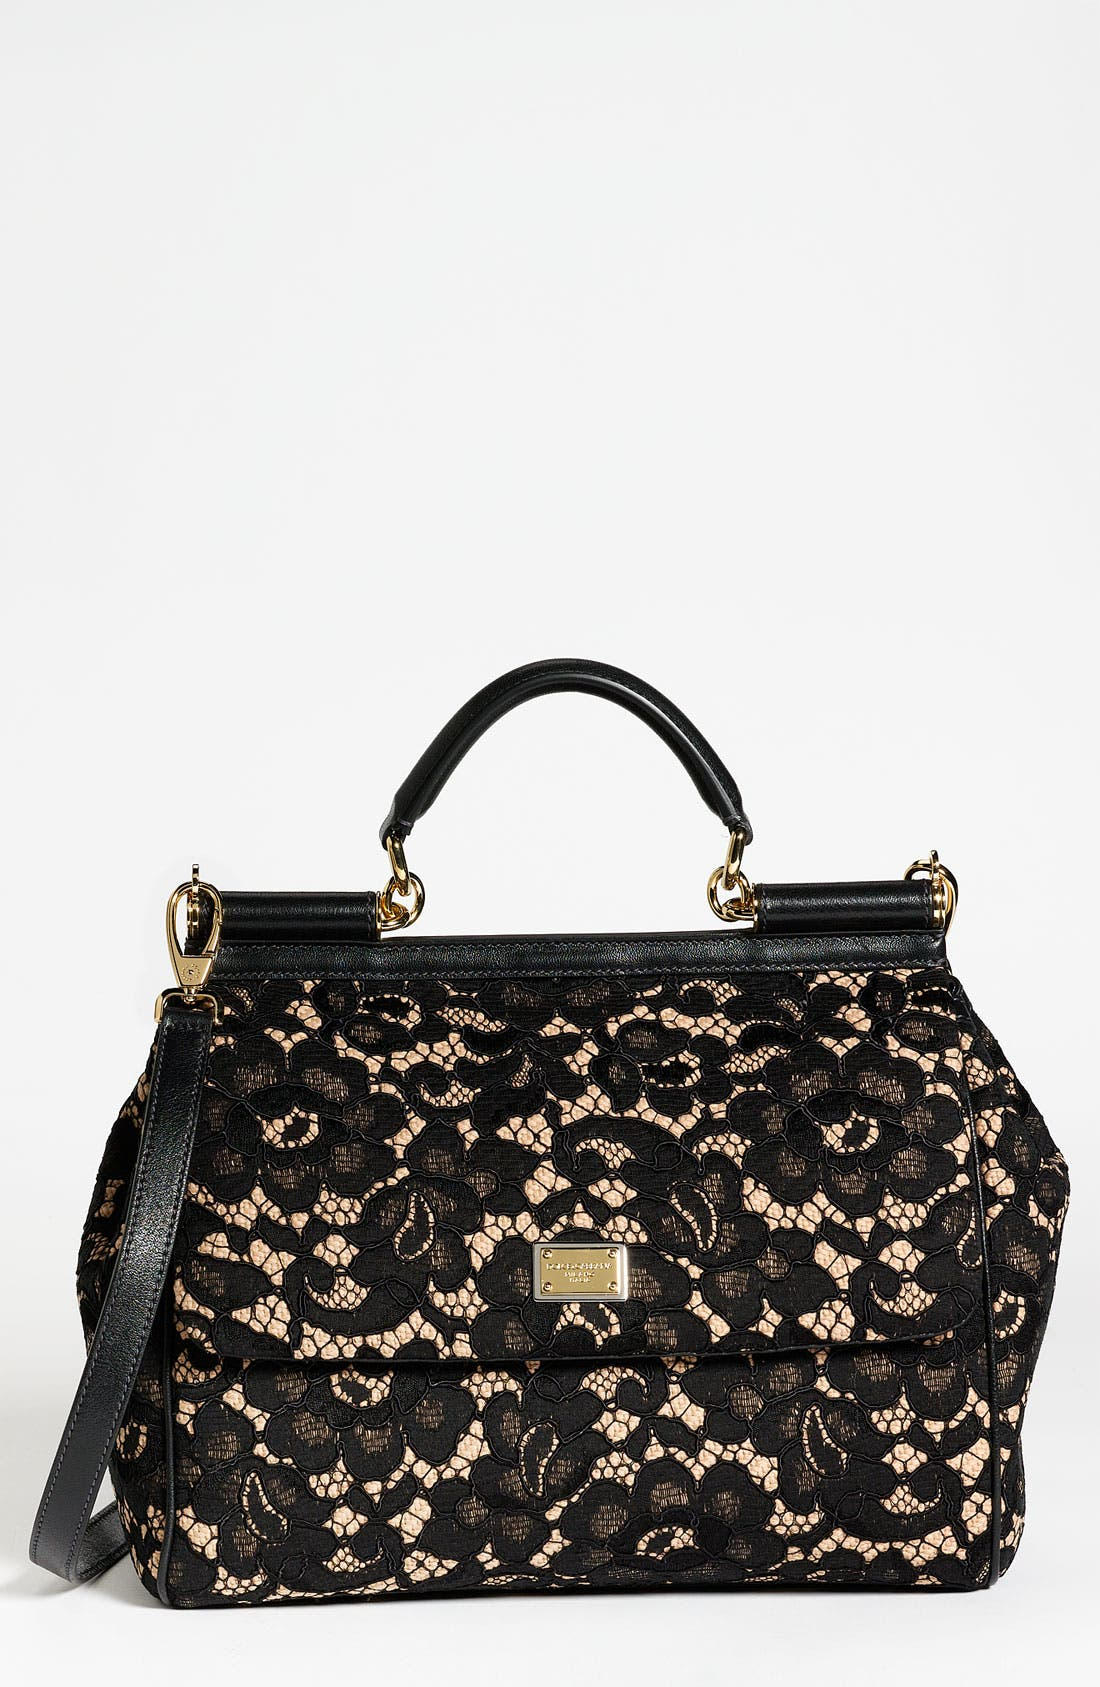 Alternate Image 1 Selected - Dolce&Gabbana 'Miss Sicily' Leather & Lace Satchel